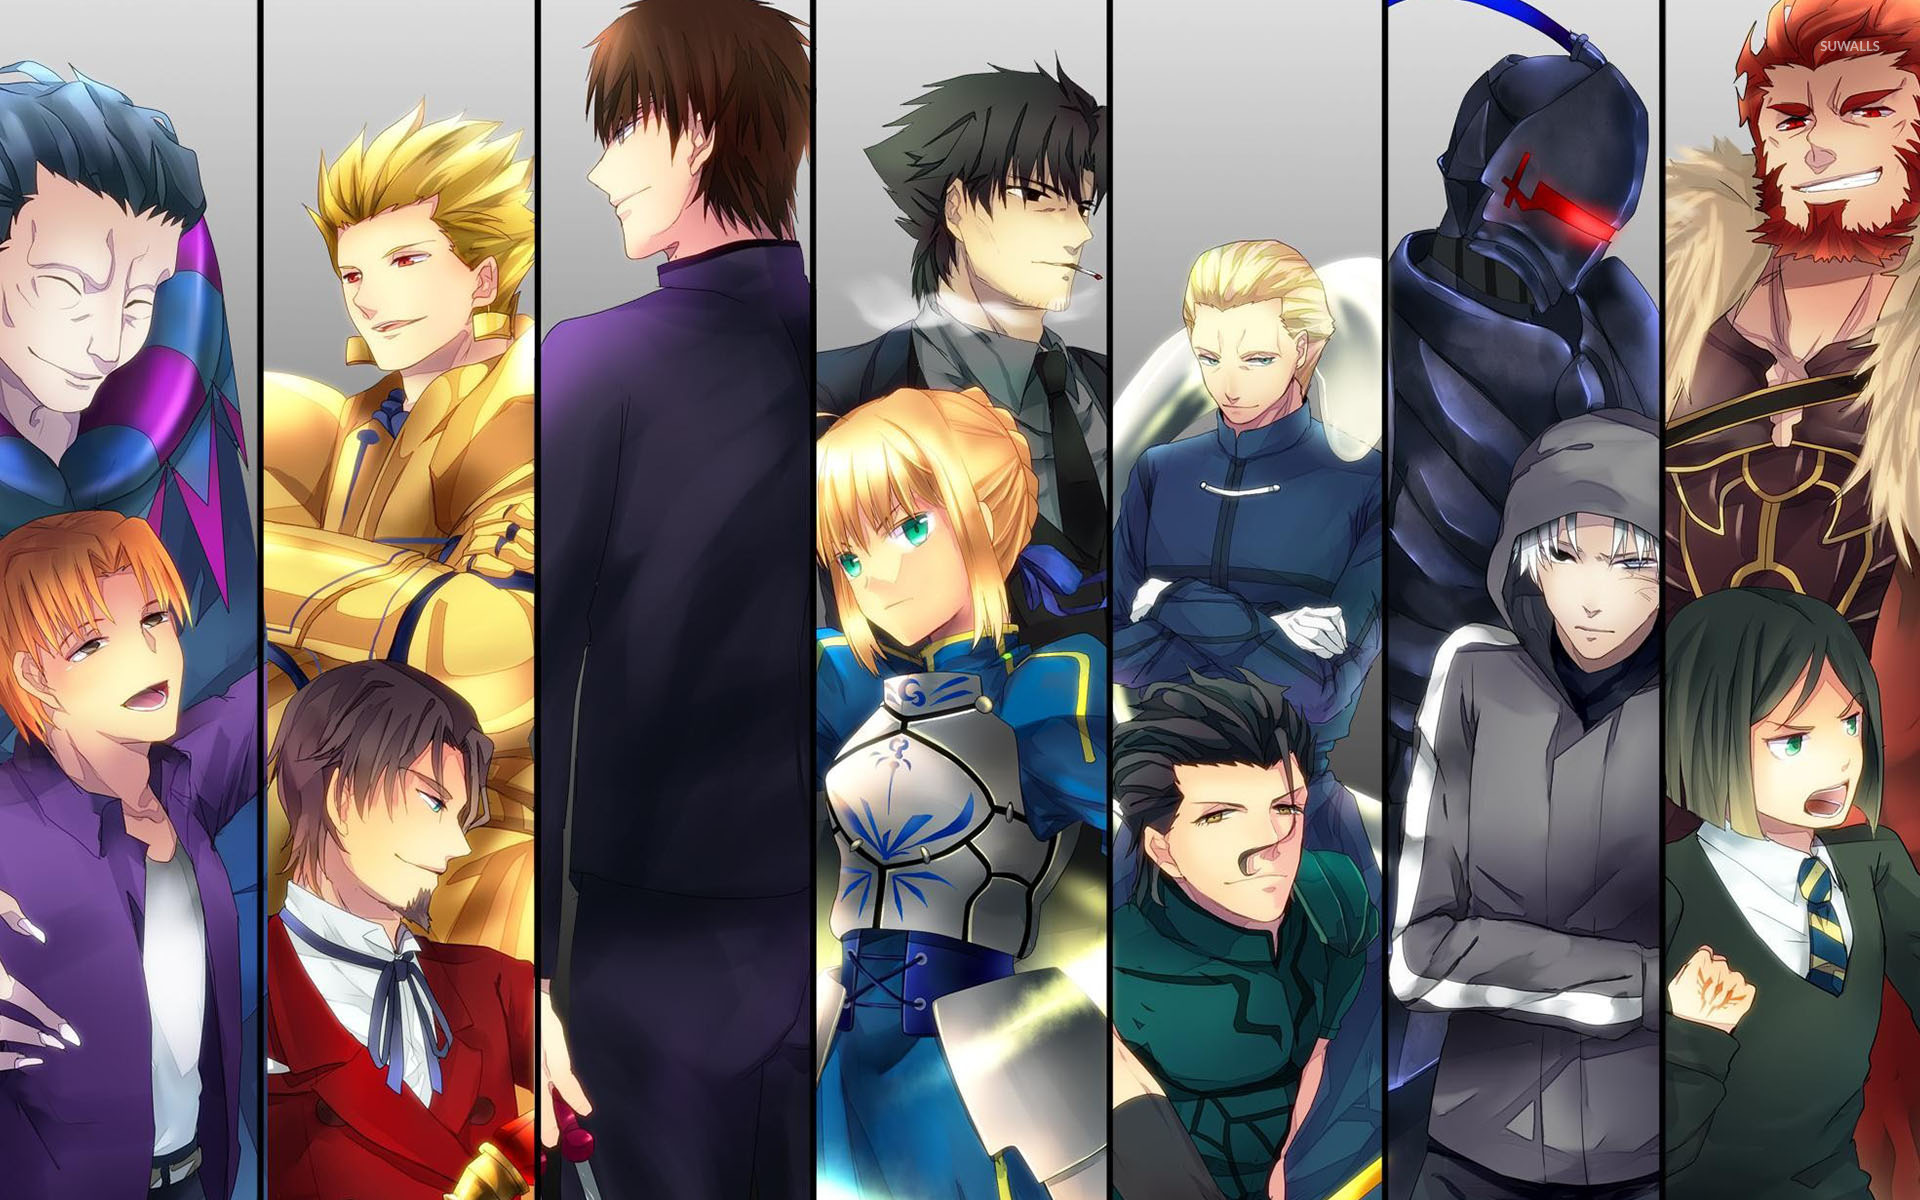 Fate Stay Night 6 Wallpaper